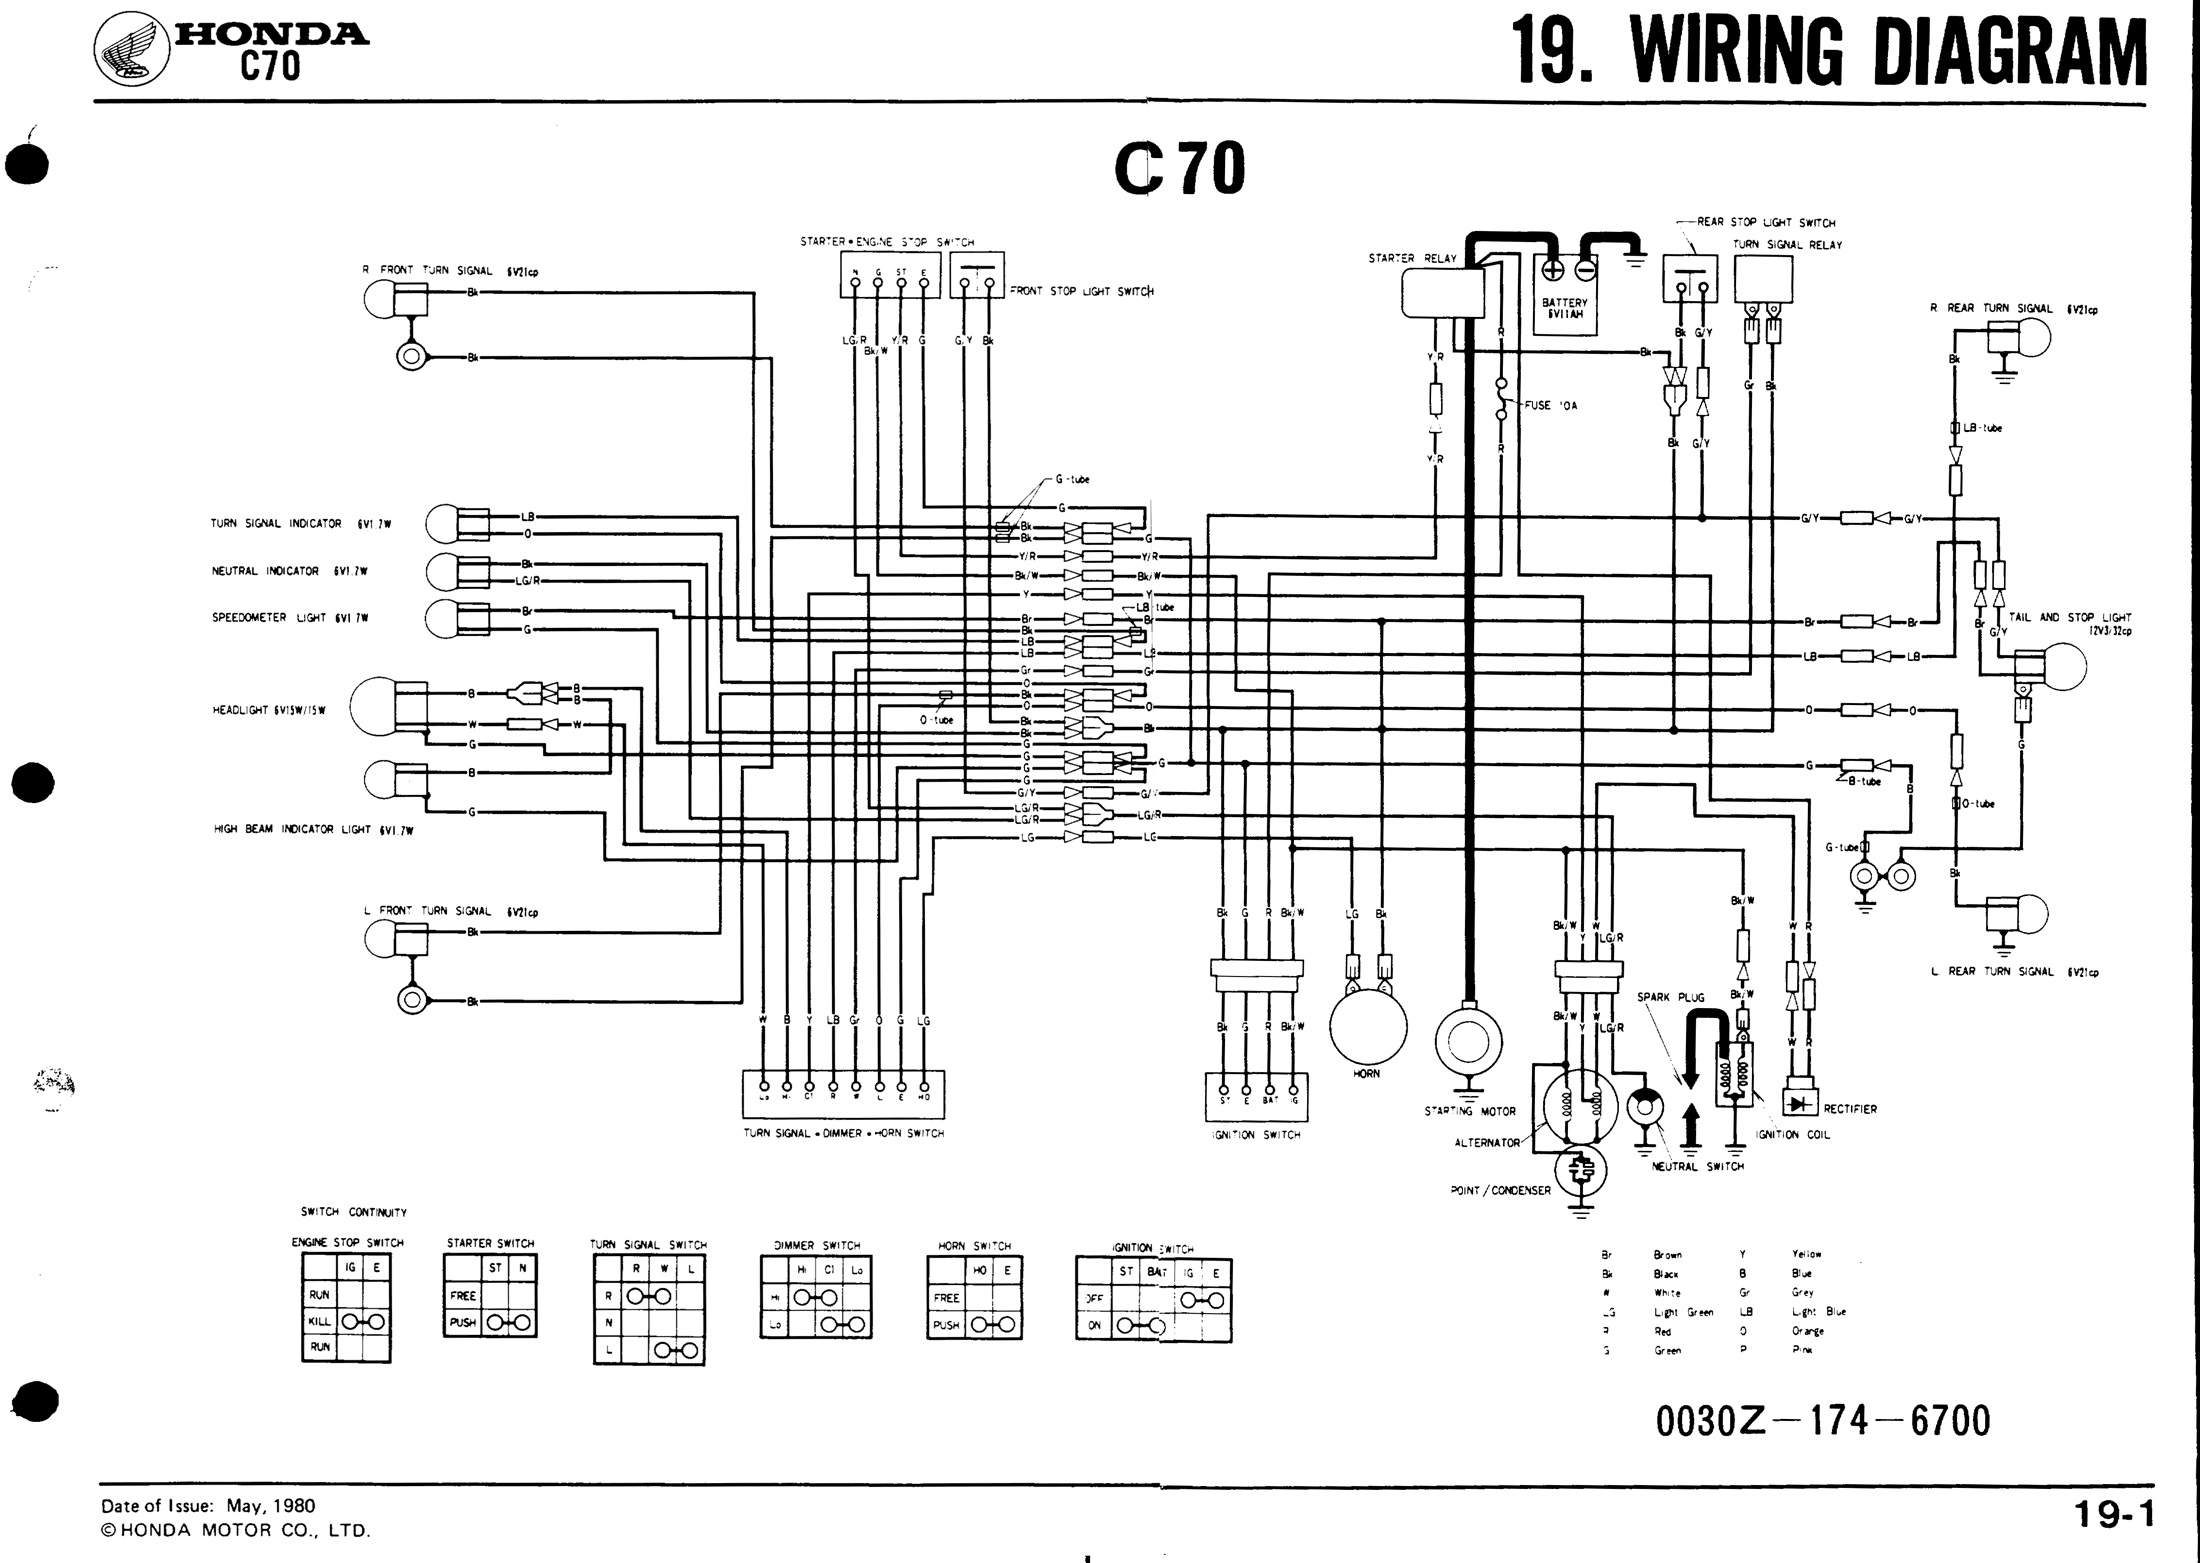 1998 Bmw 540i Headlight Wiring Diagram together with How To Build Solar Panel Voltage moreover GY5o 16436 as well Moline Letter Series Traactor Delco 10si Alternator Wiring Diagram Must Running Re mend furthermore SF2j 17591. on simple motorcycle wiring